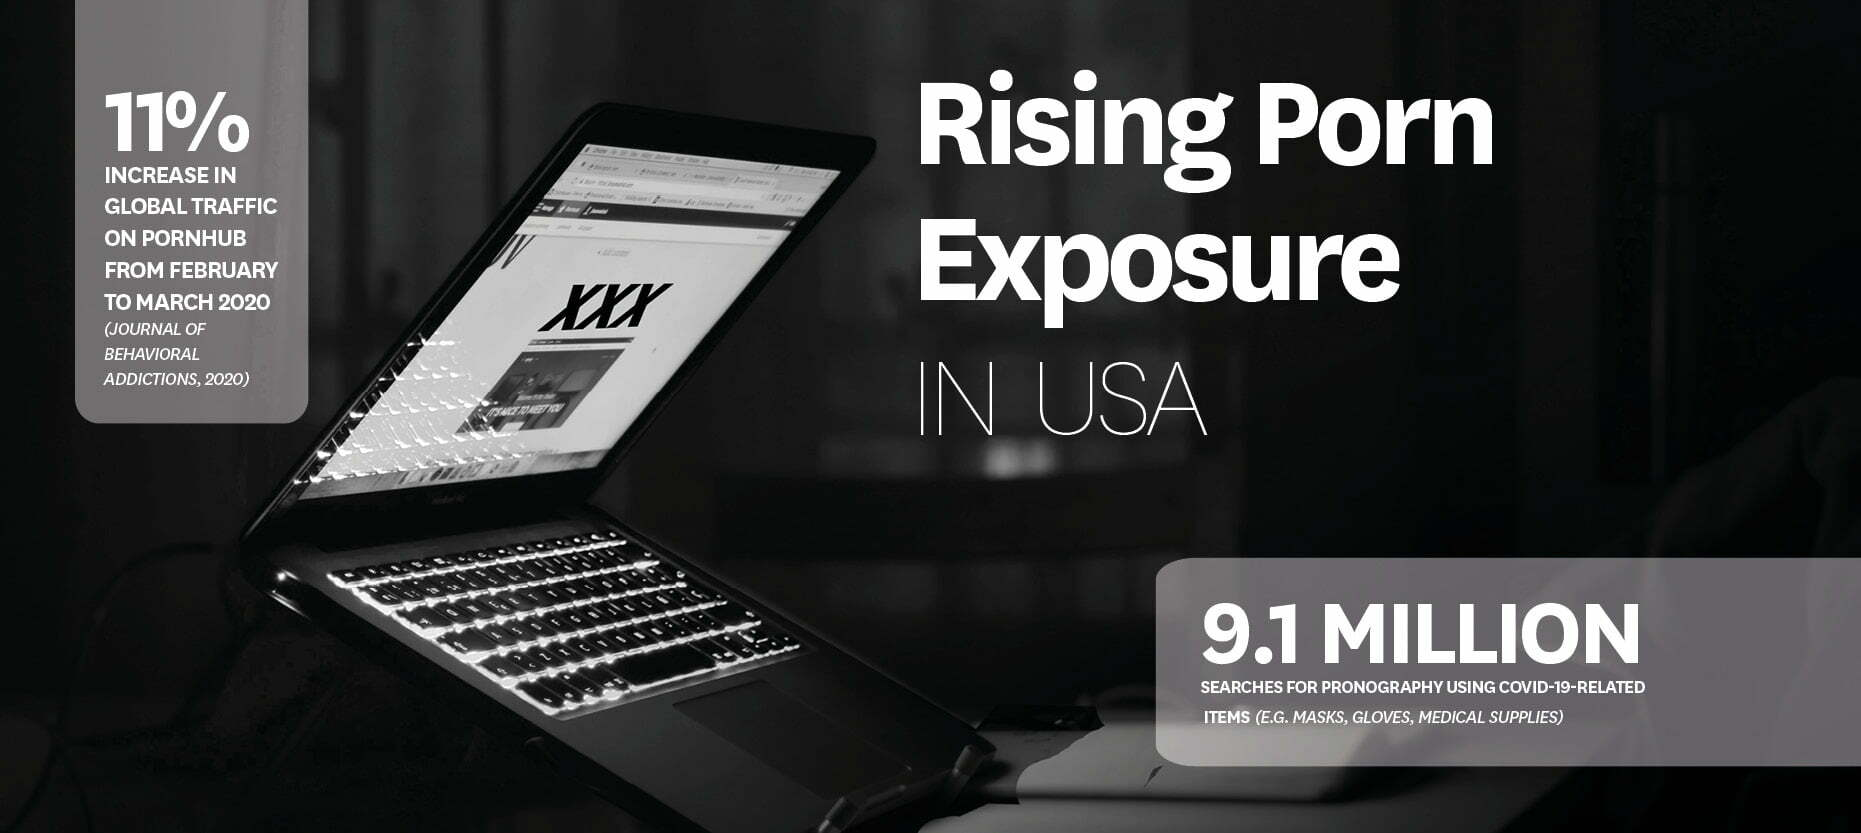 Rising Porn Exposure In USA